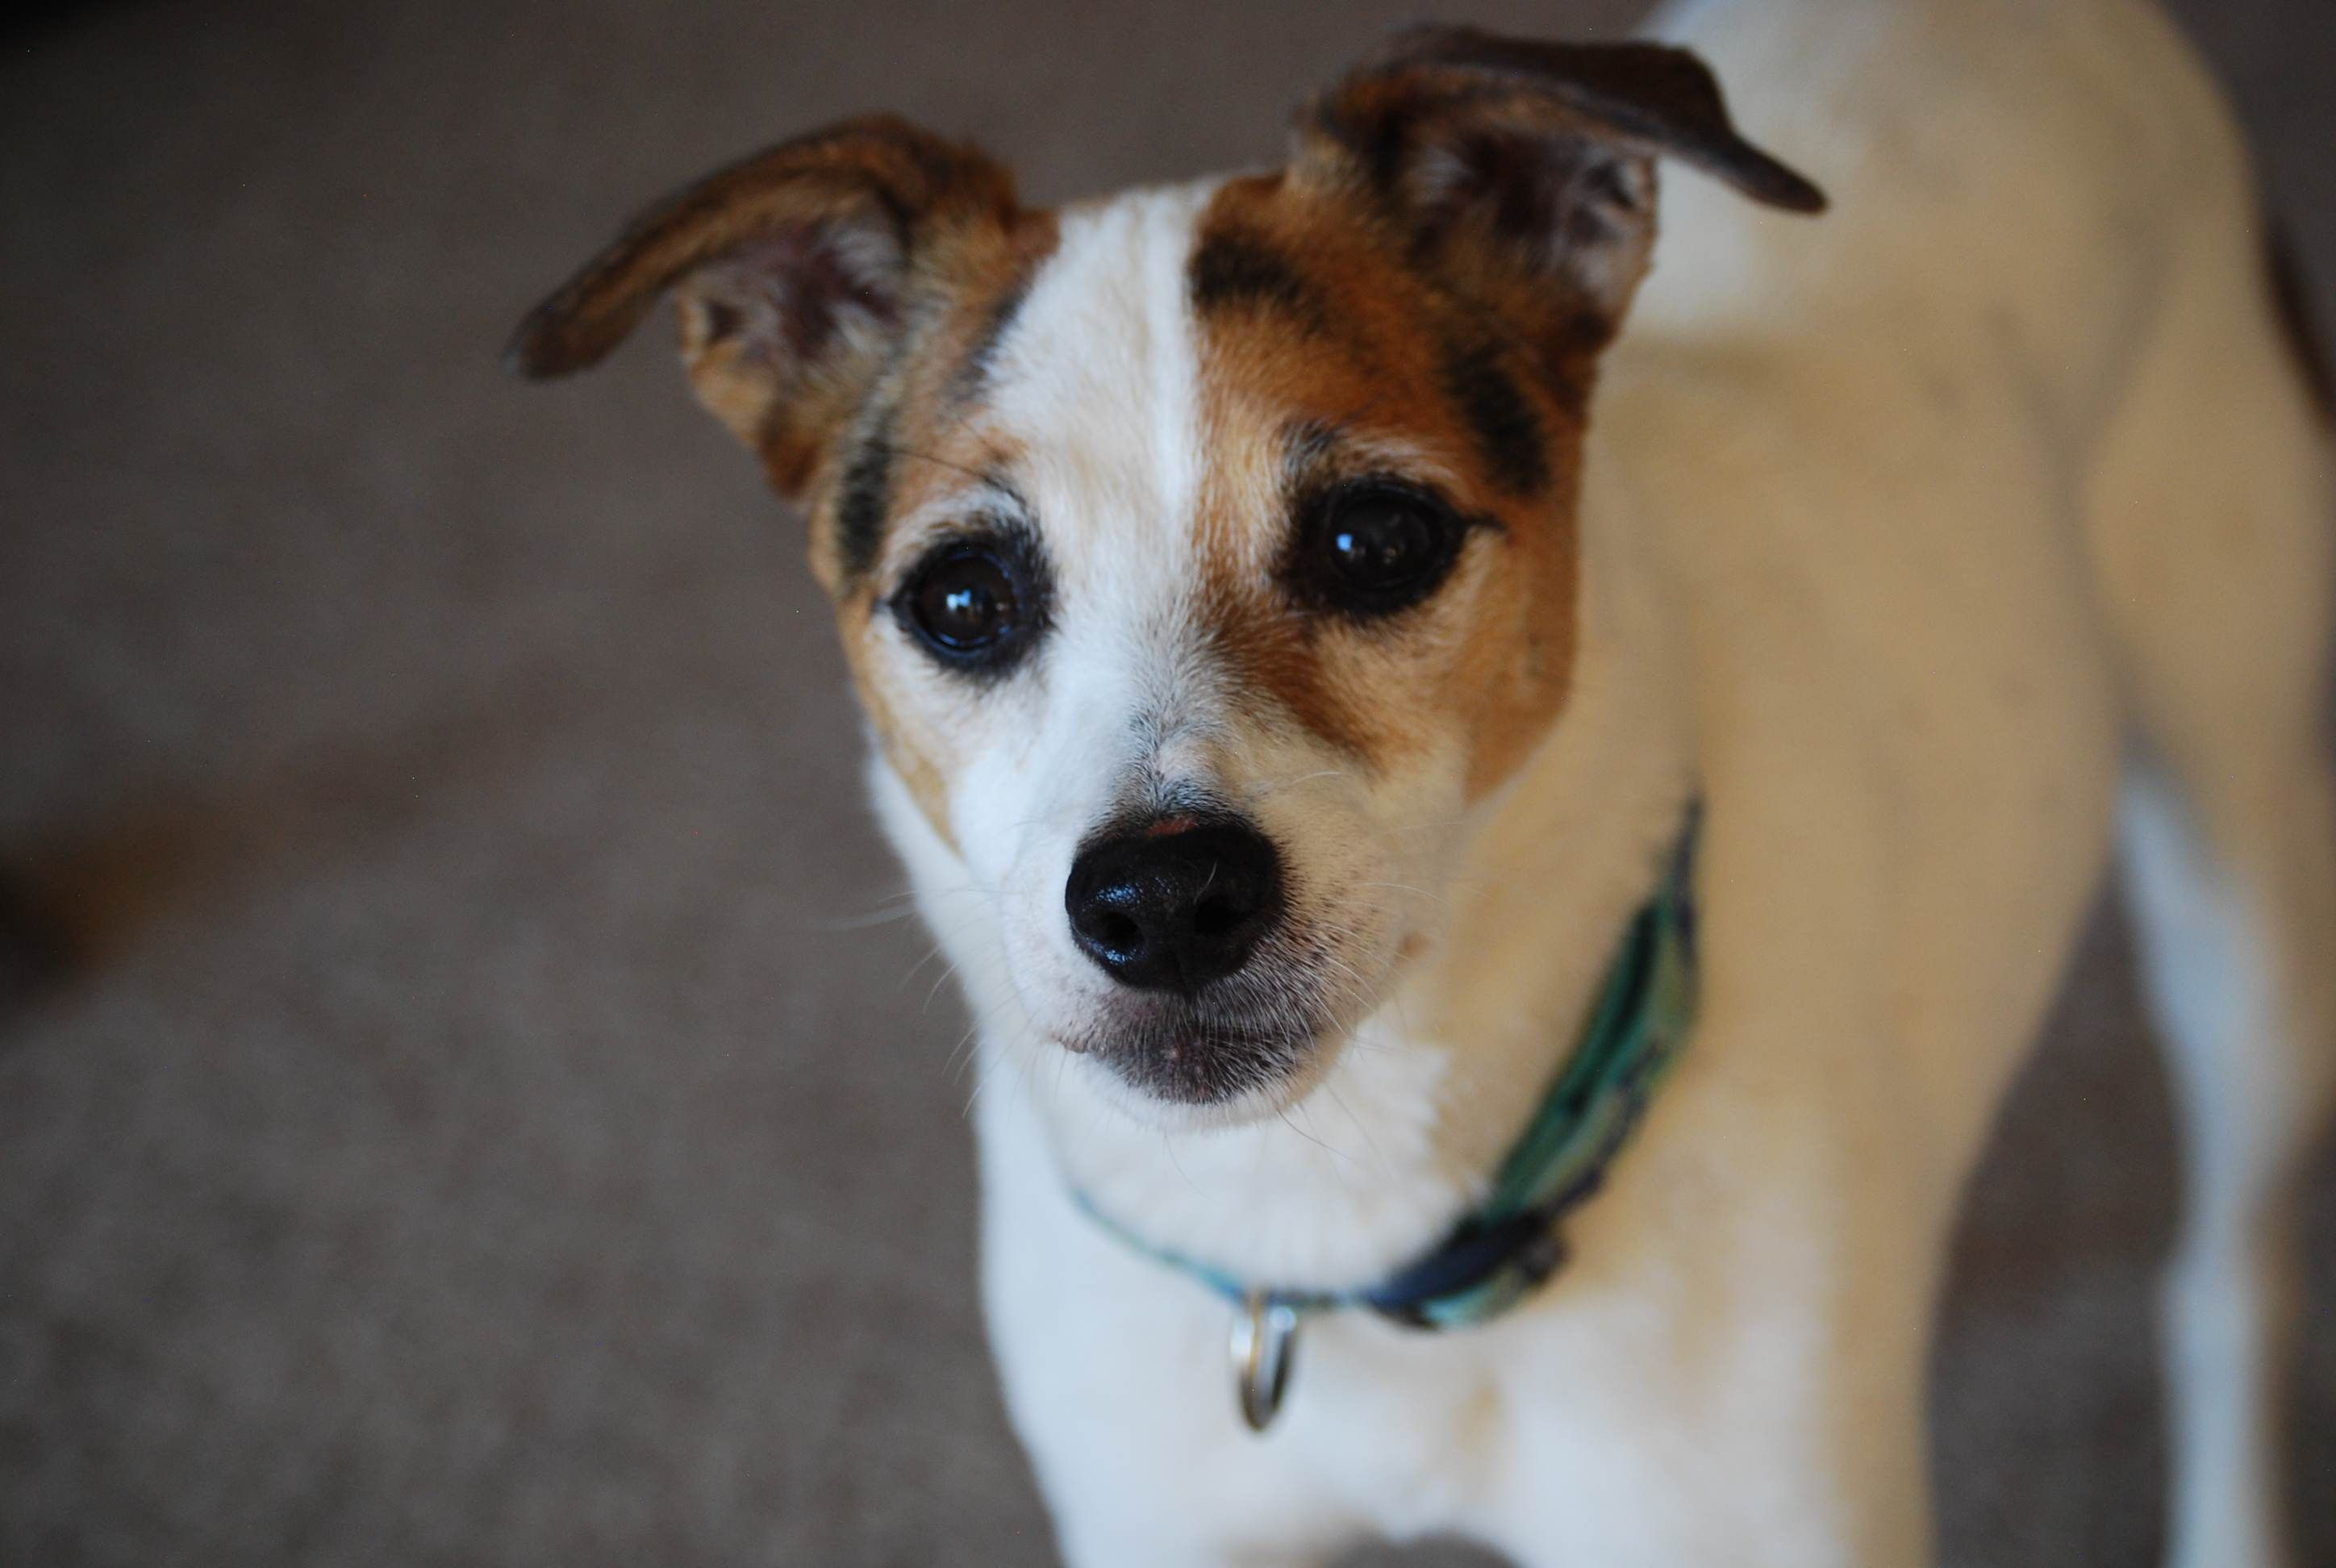 Adopted!!! Woody was found wandering on the side of the